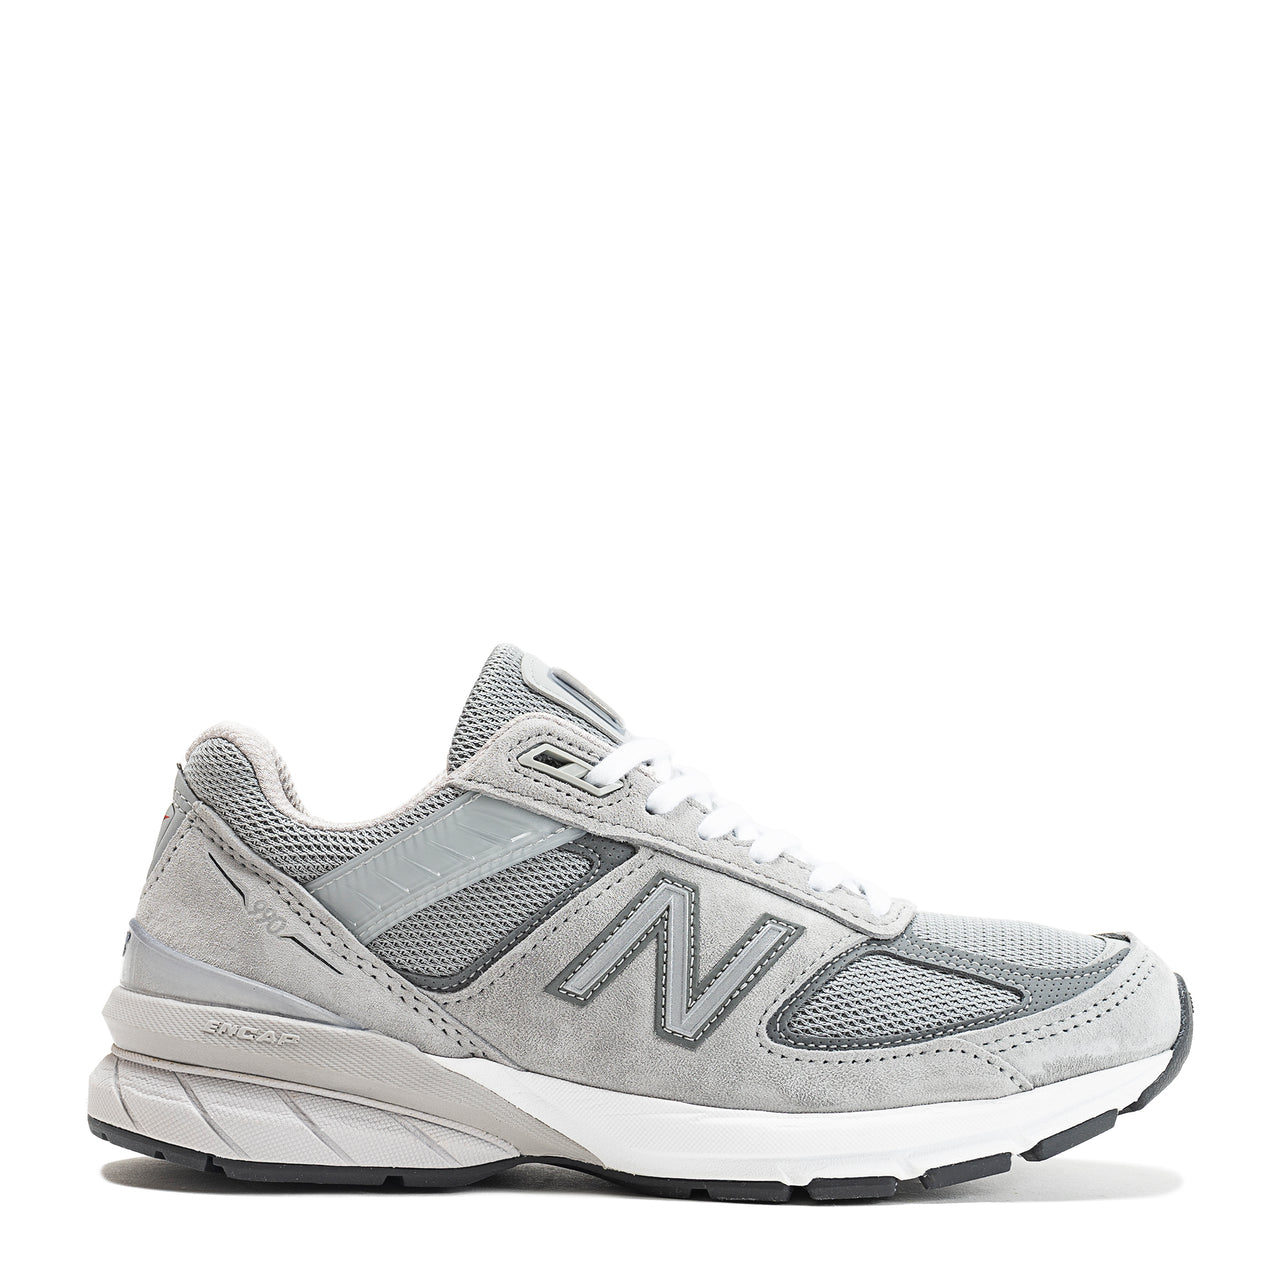 New Balance - WMNS 990 V5 MADE IN USA - Footwear - Saint Alfred